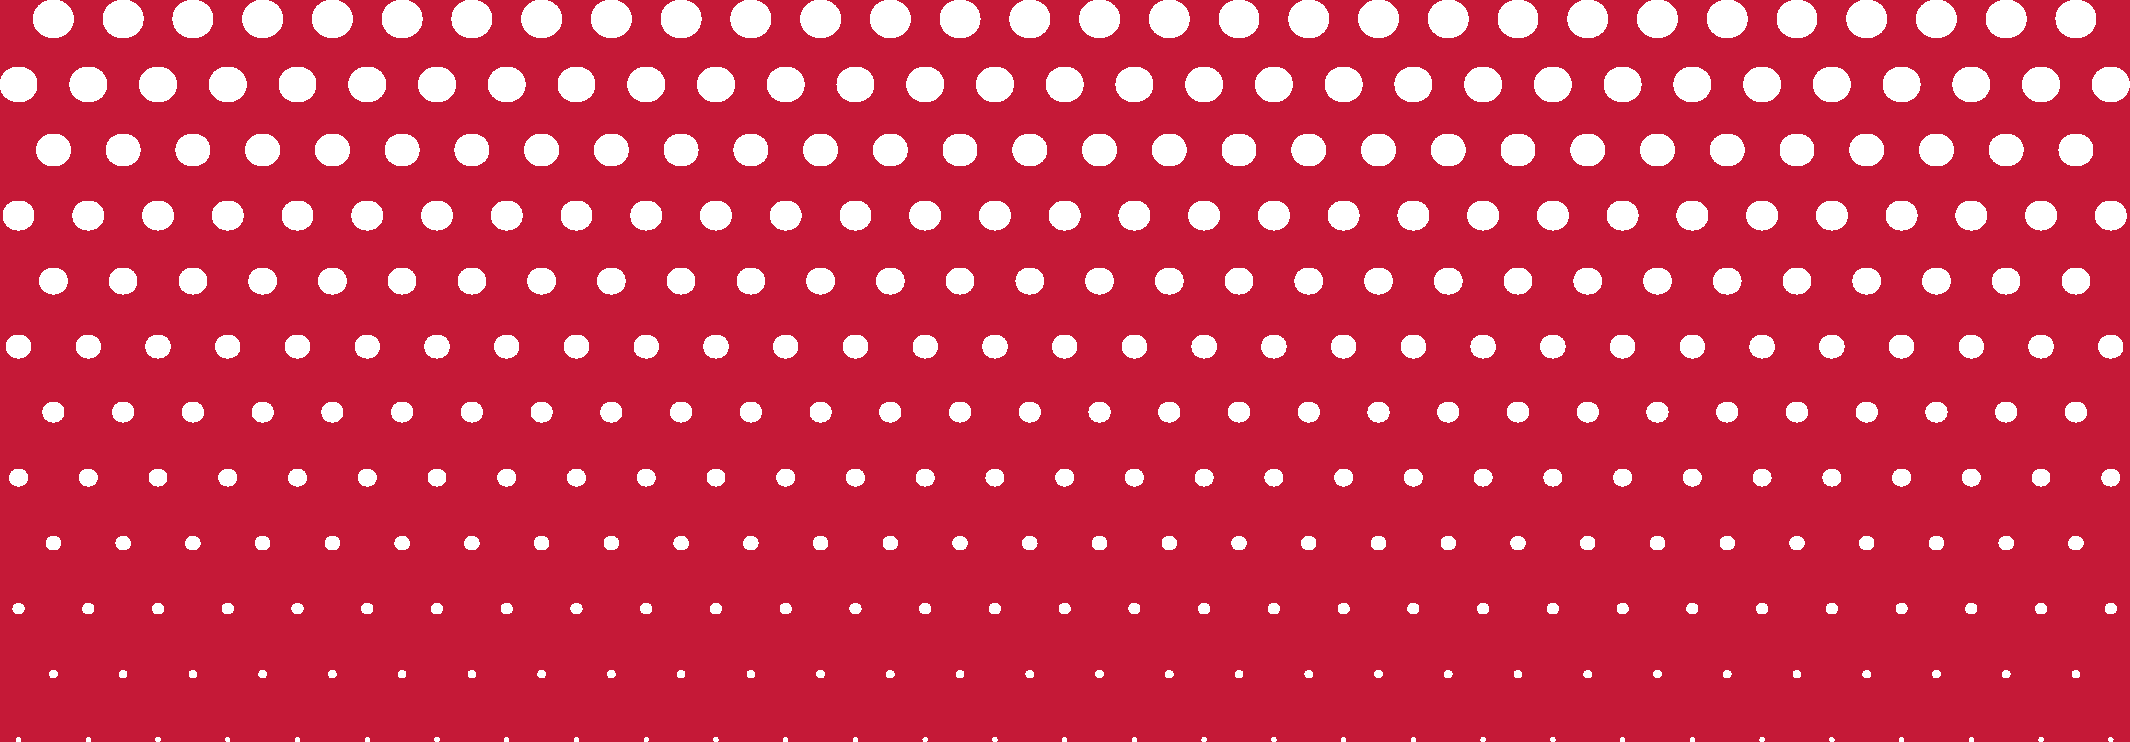 SC-DotPattern-red.png